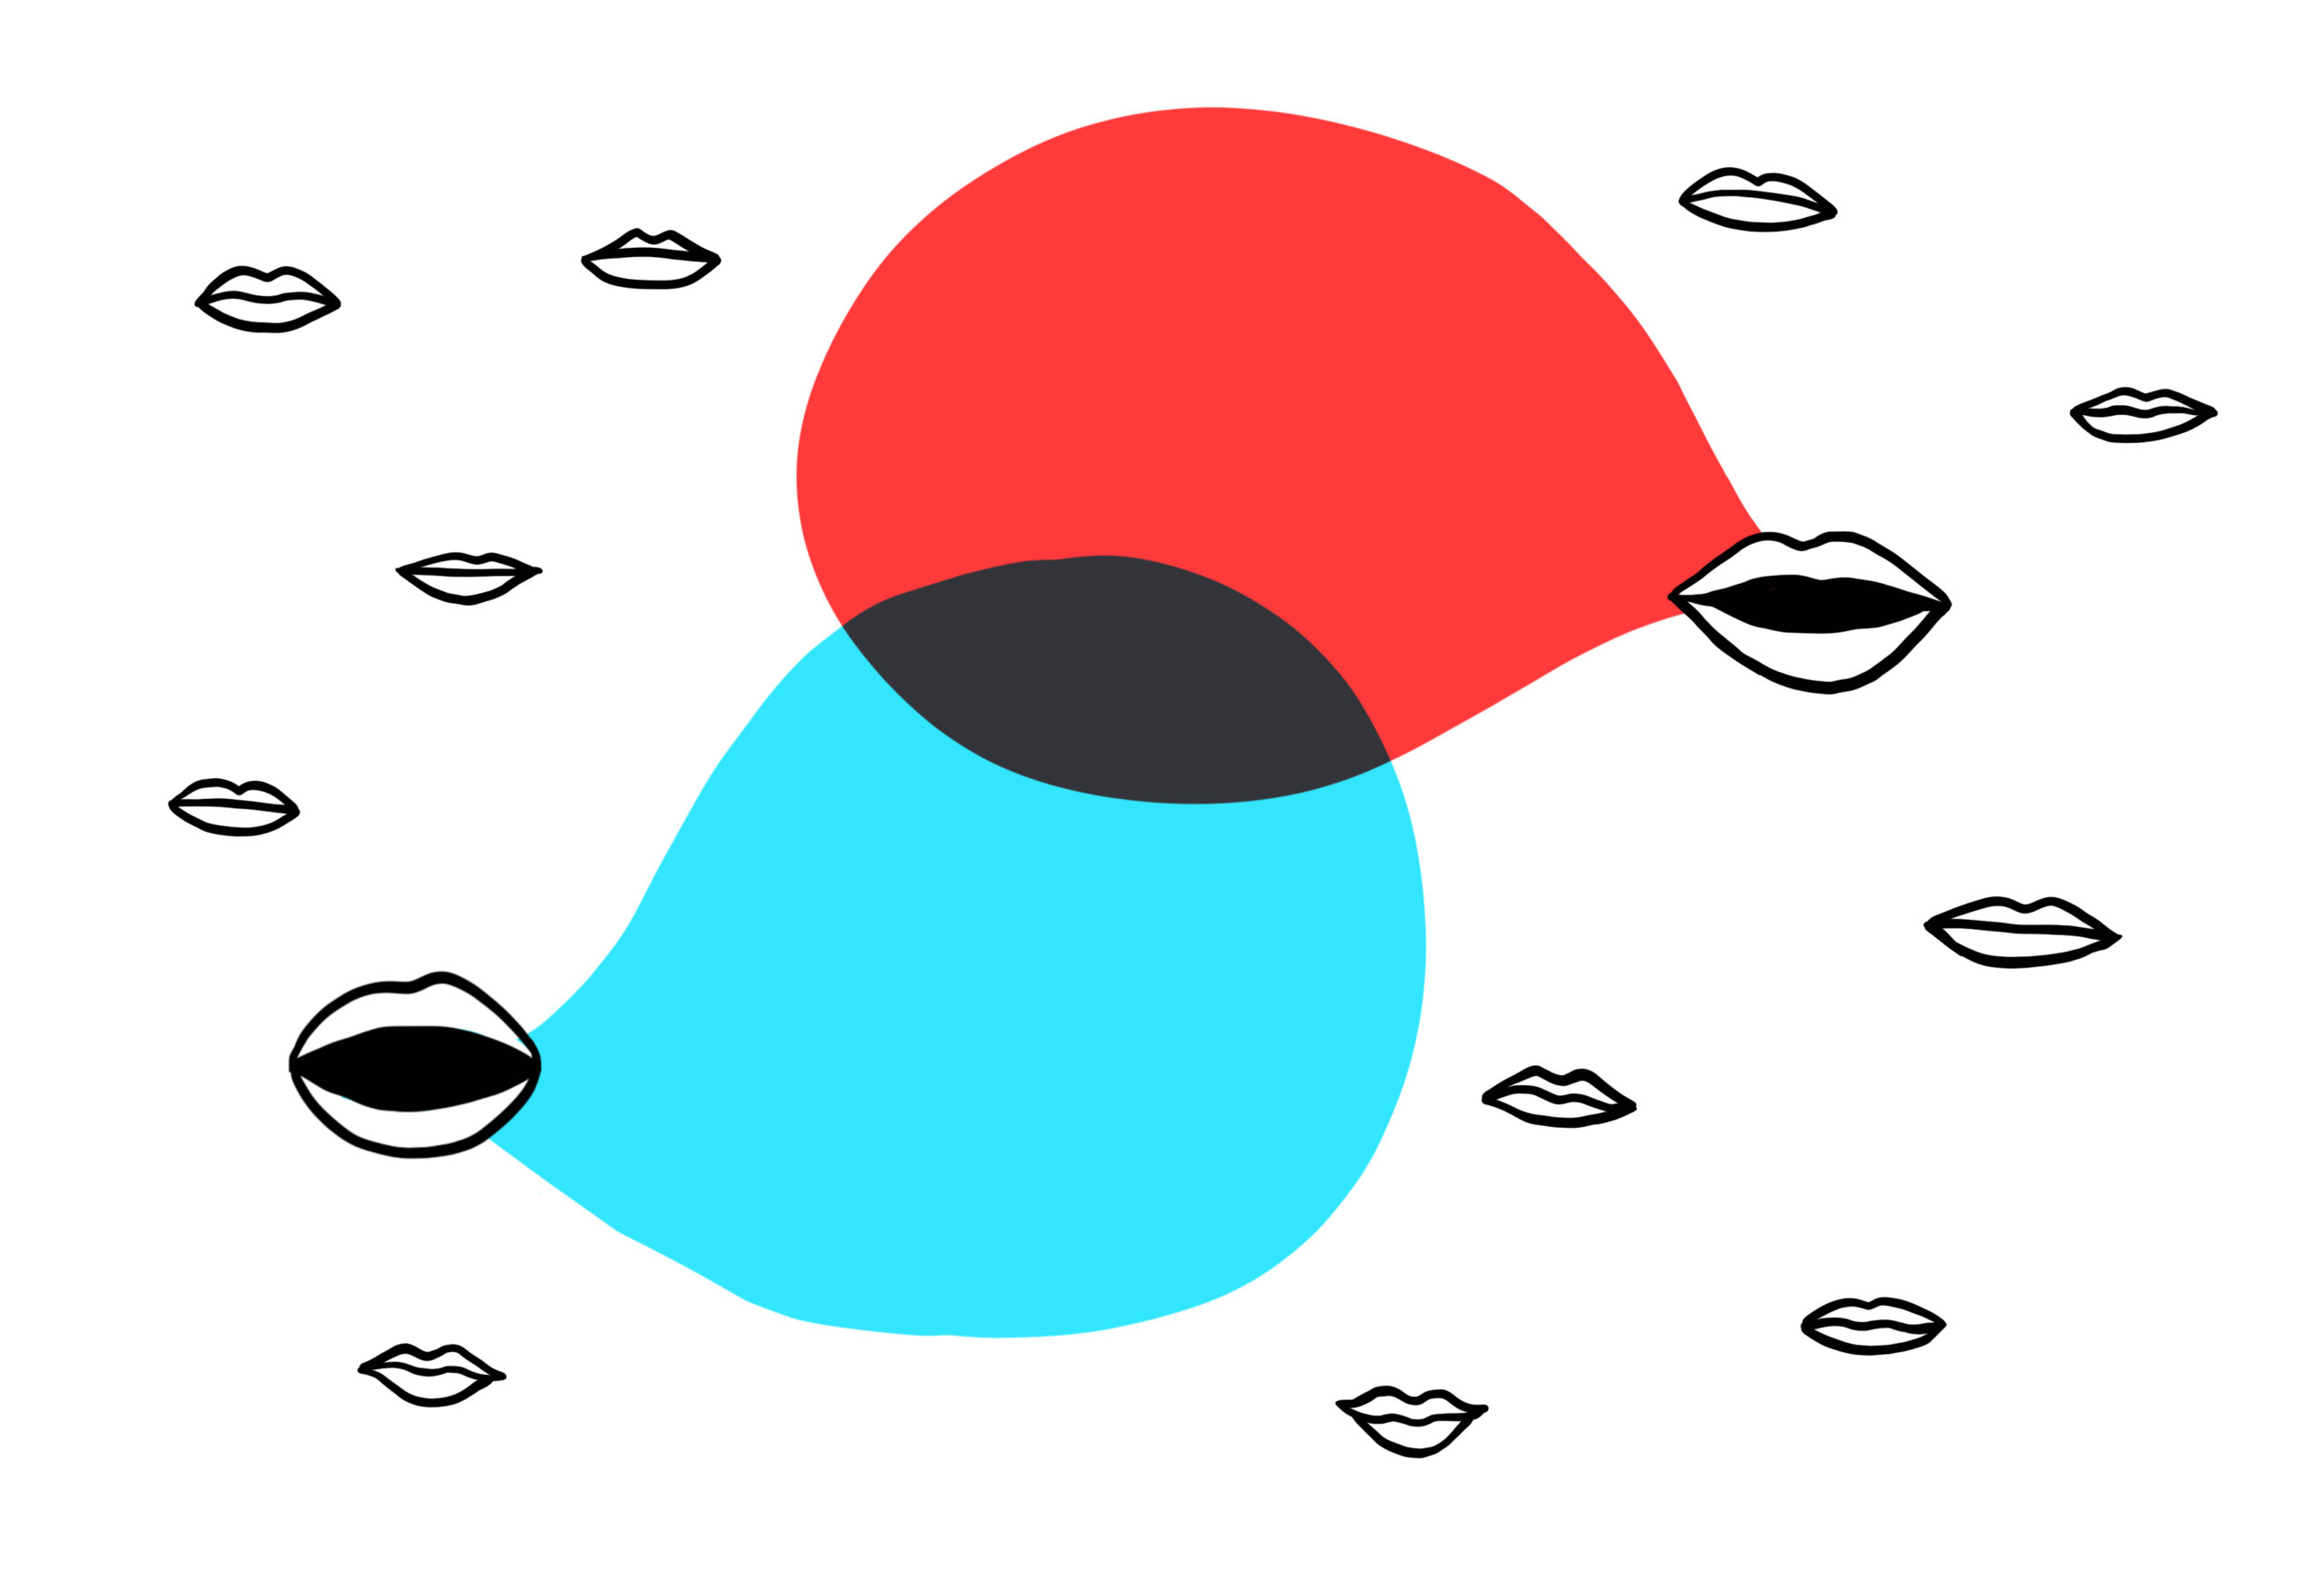 Many mouths making conversation, with speech bubbles in red and blue.